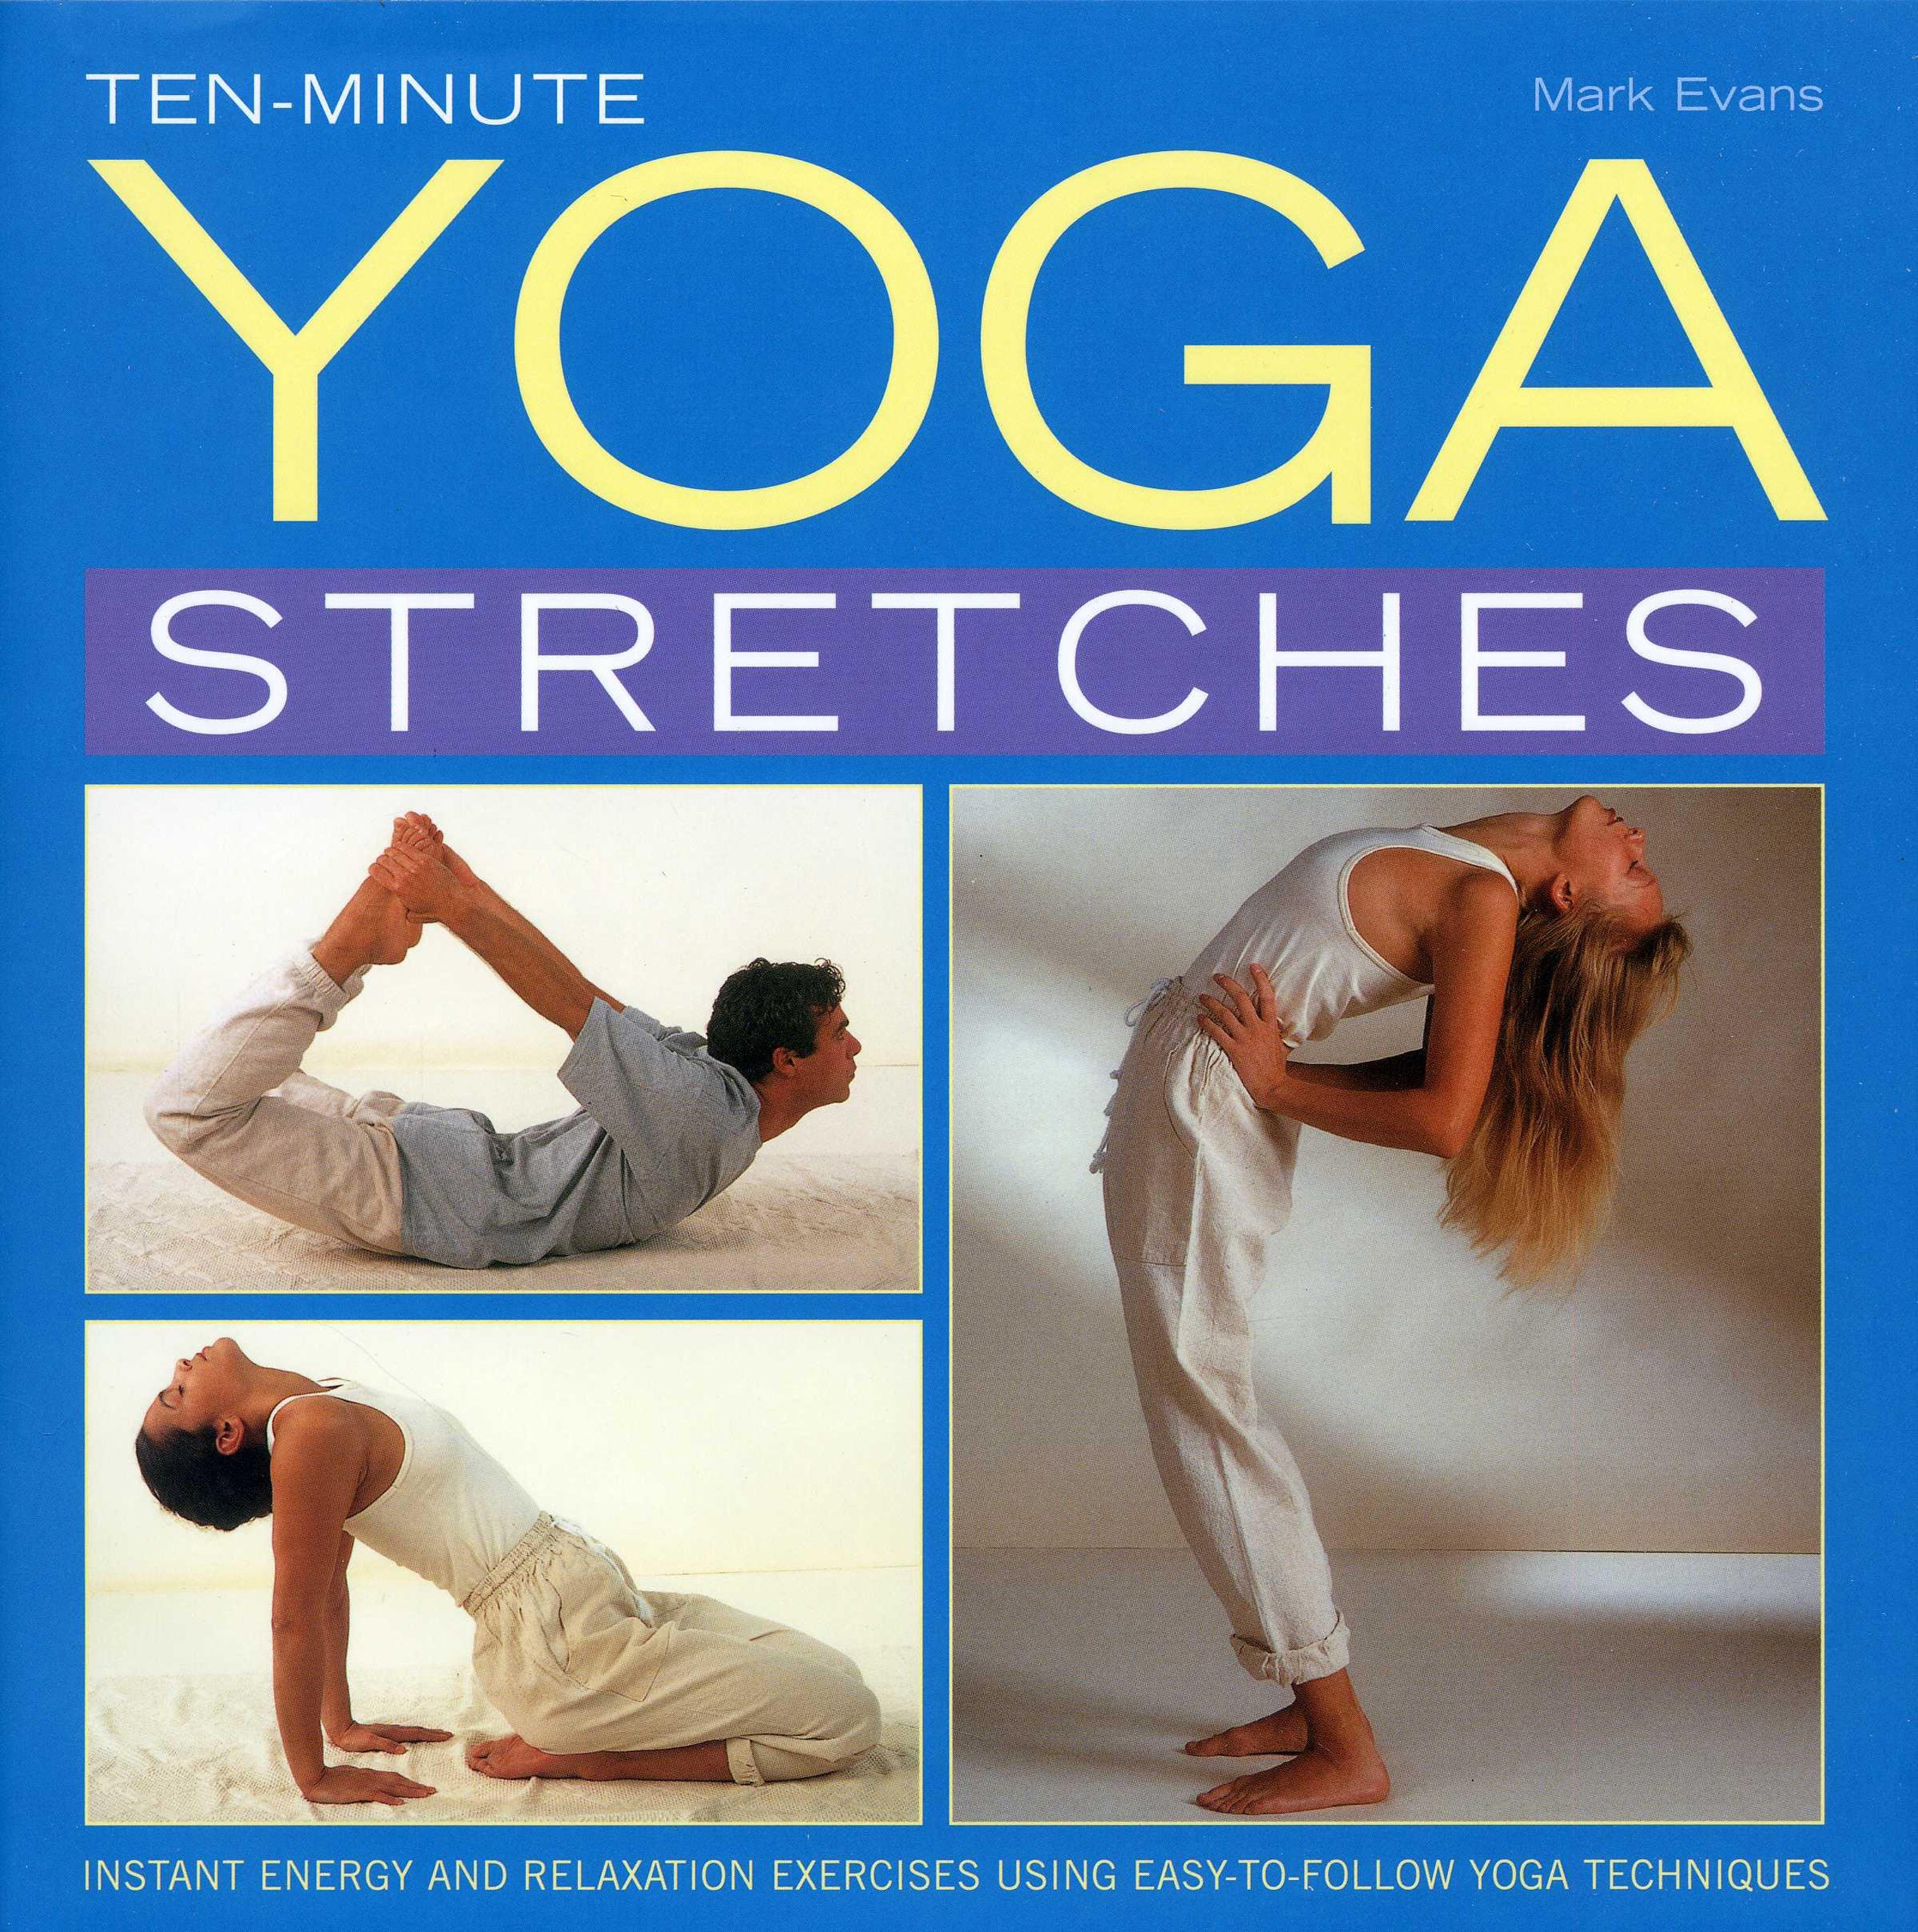 Ten-minute Yoga Stretches: Instant Energy and Relaxation ...